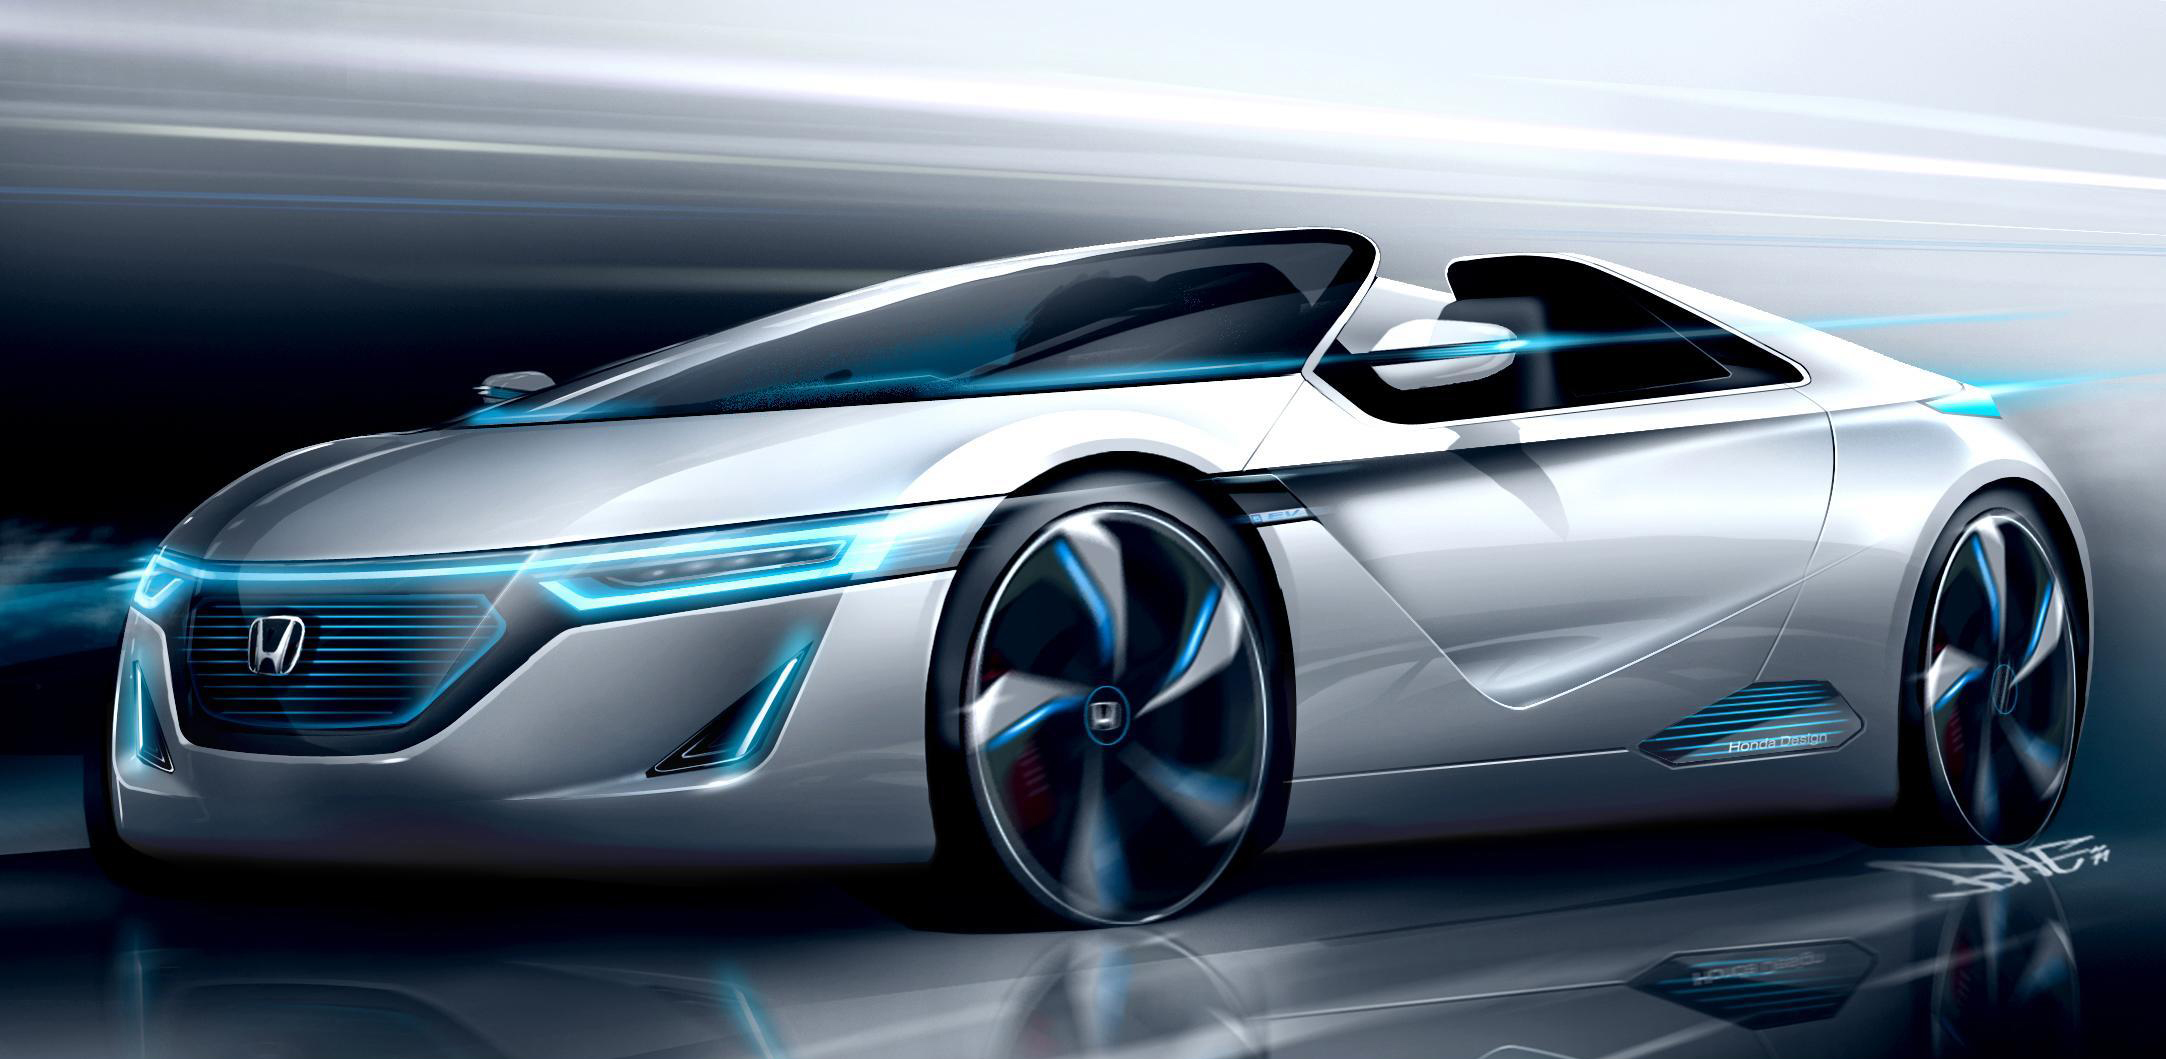 2012 Honda Ev Ster Concept News And Information Research And History